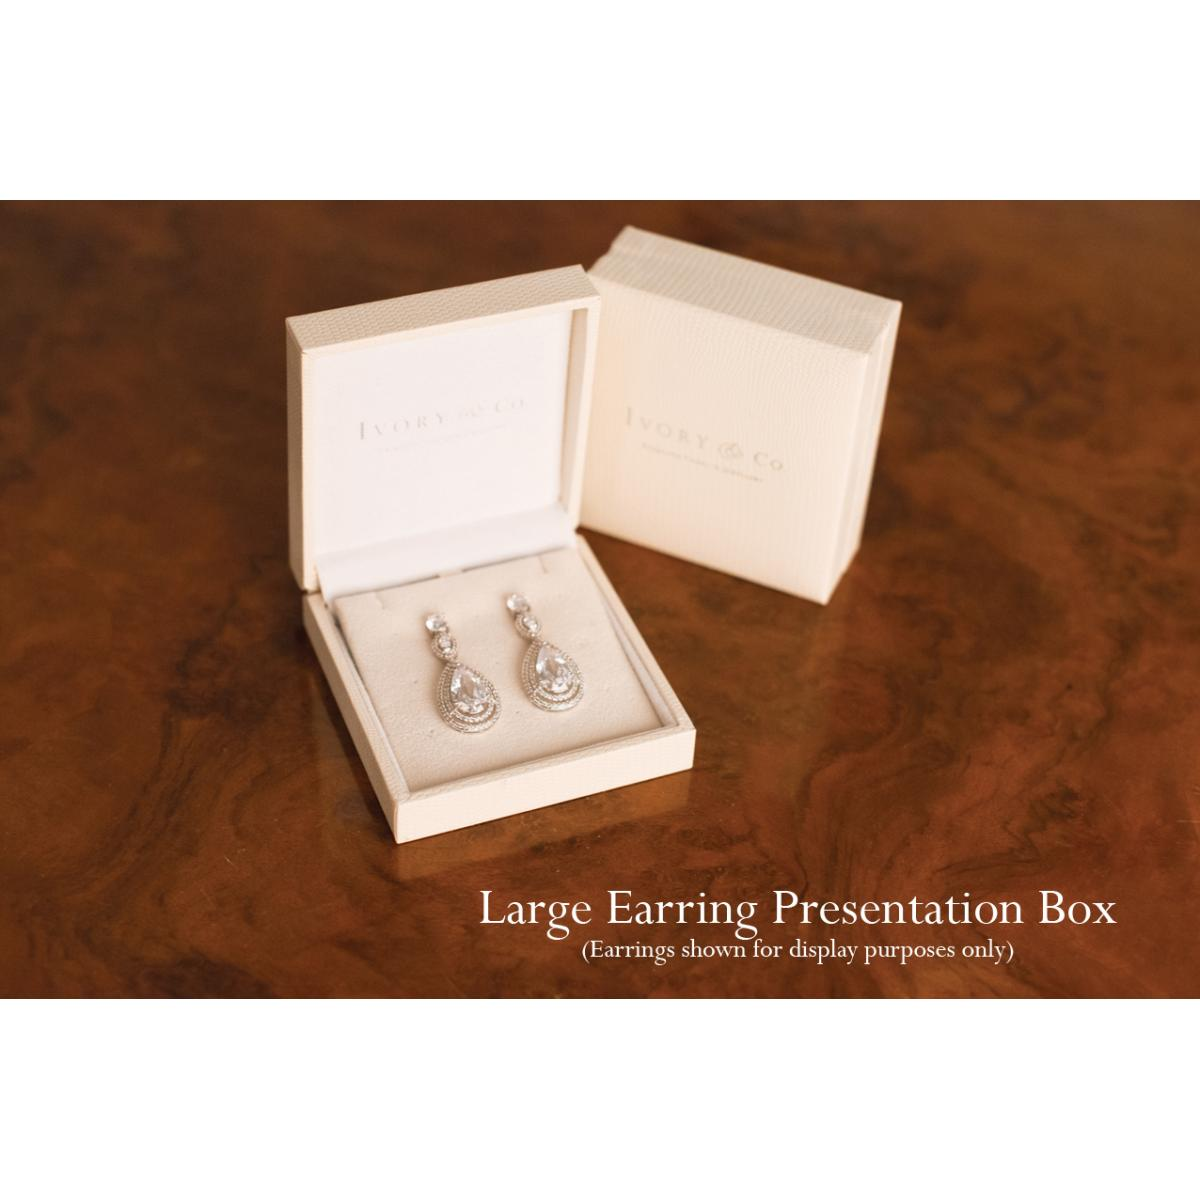 Ivory and Co Wall Street Earrings